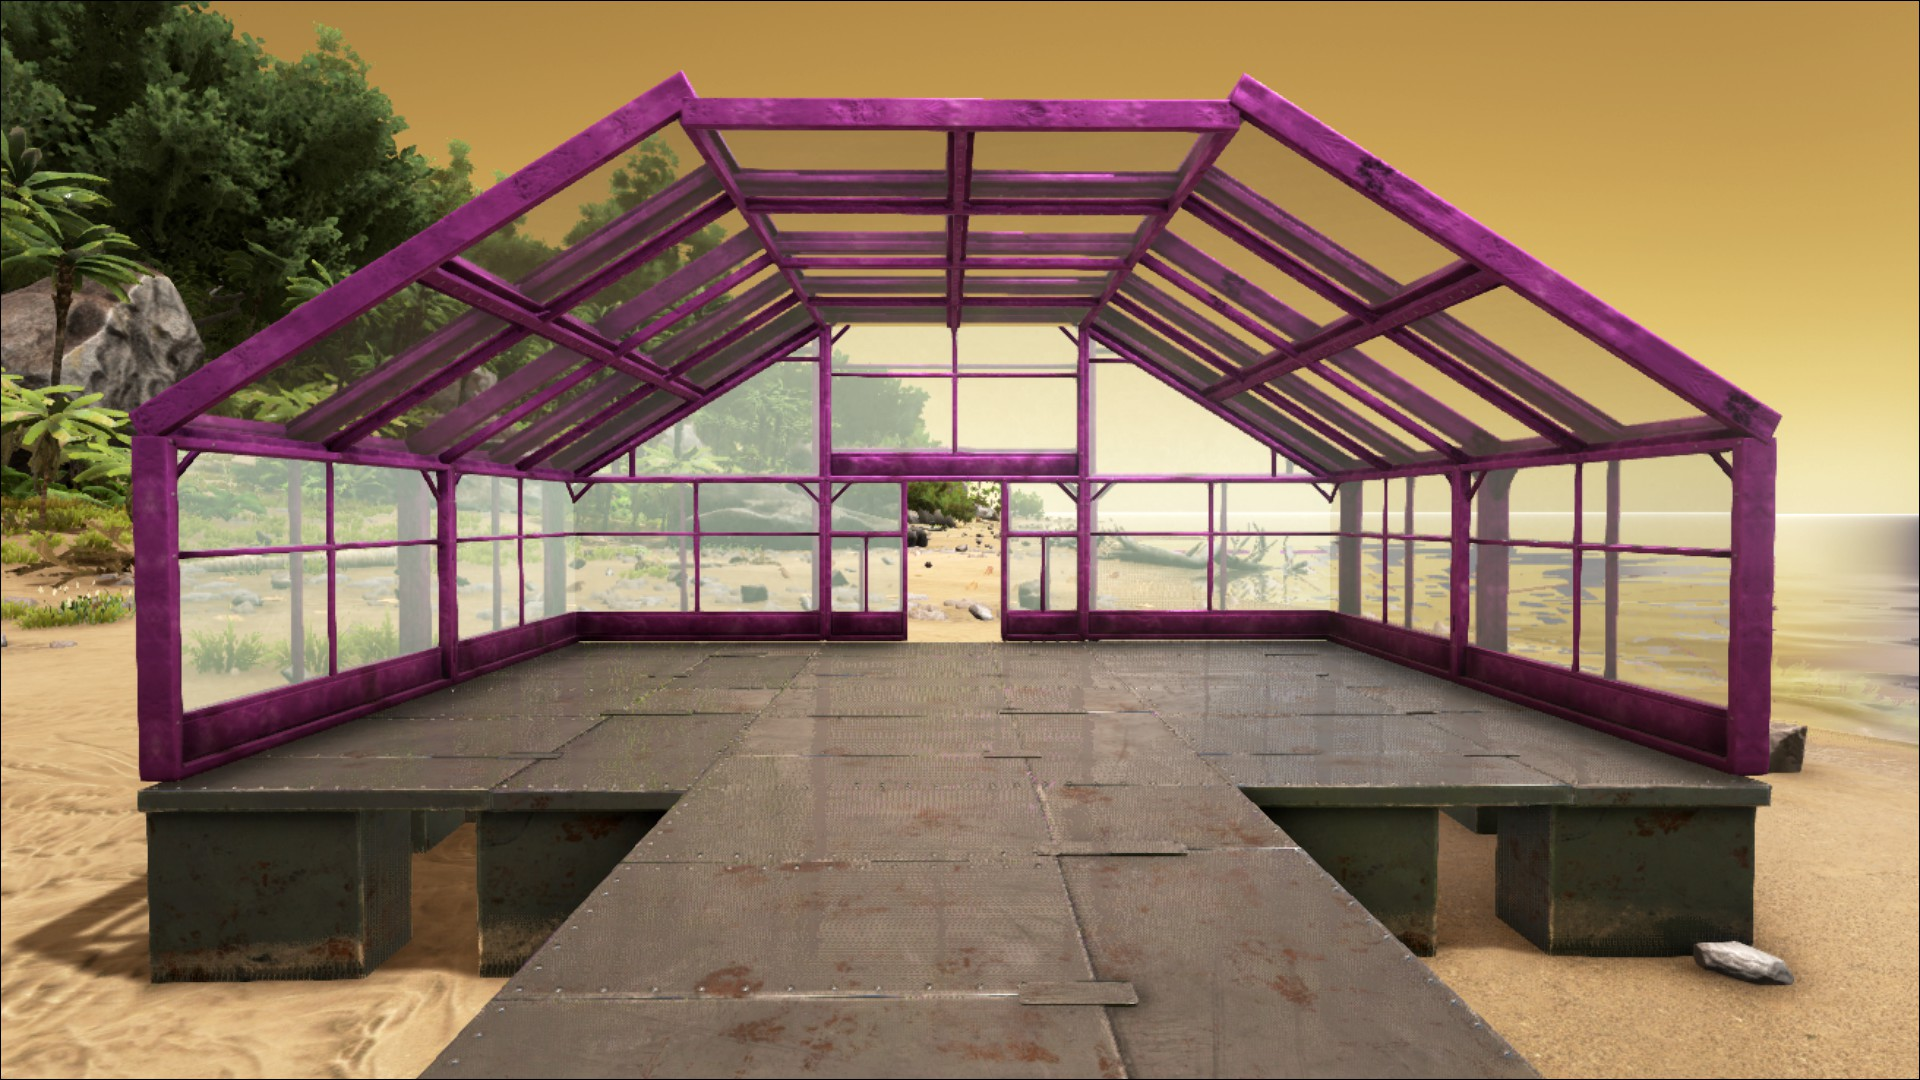 Greenhouse Doorframe - Official ARK: Survival Evolved Wiki on